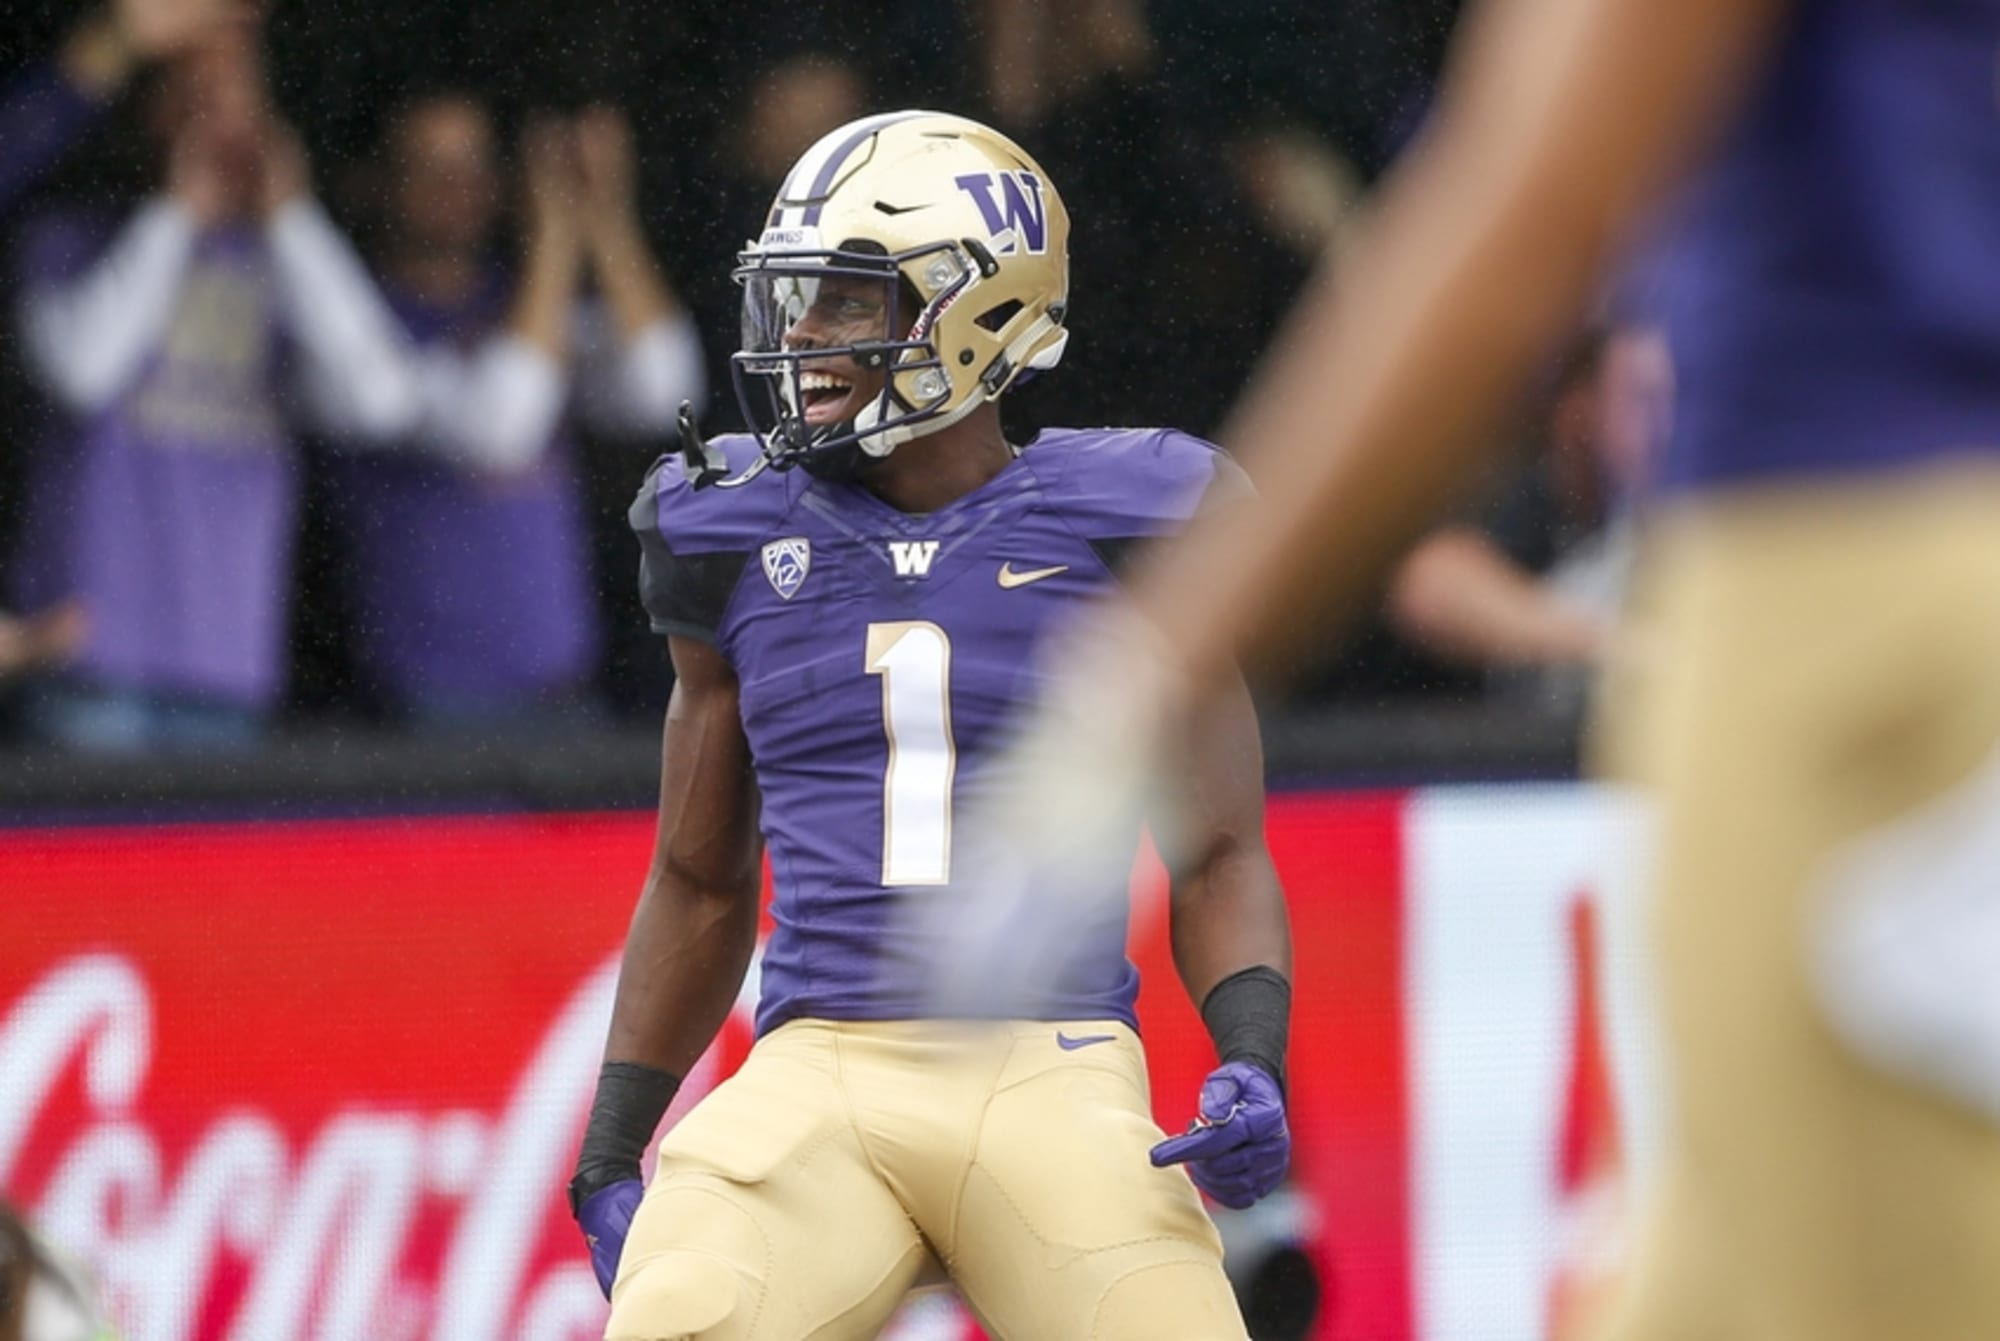 Huskies: John Ross Back With a Bang as He Enters Record Books